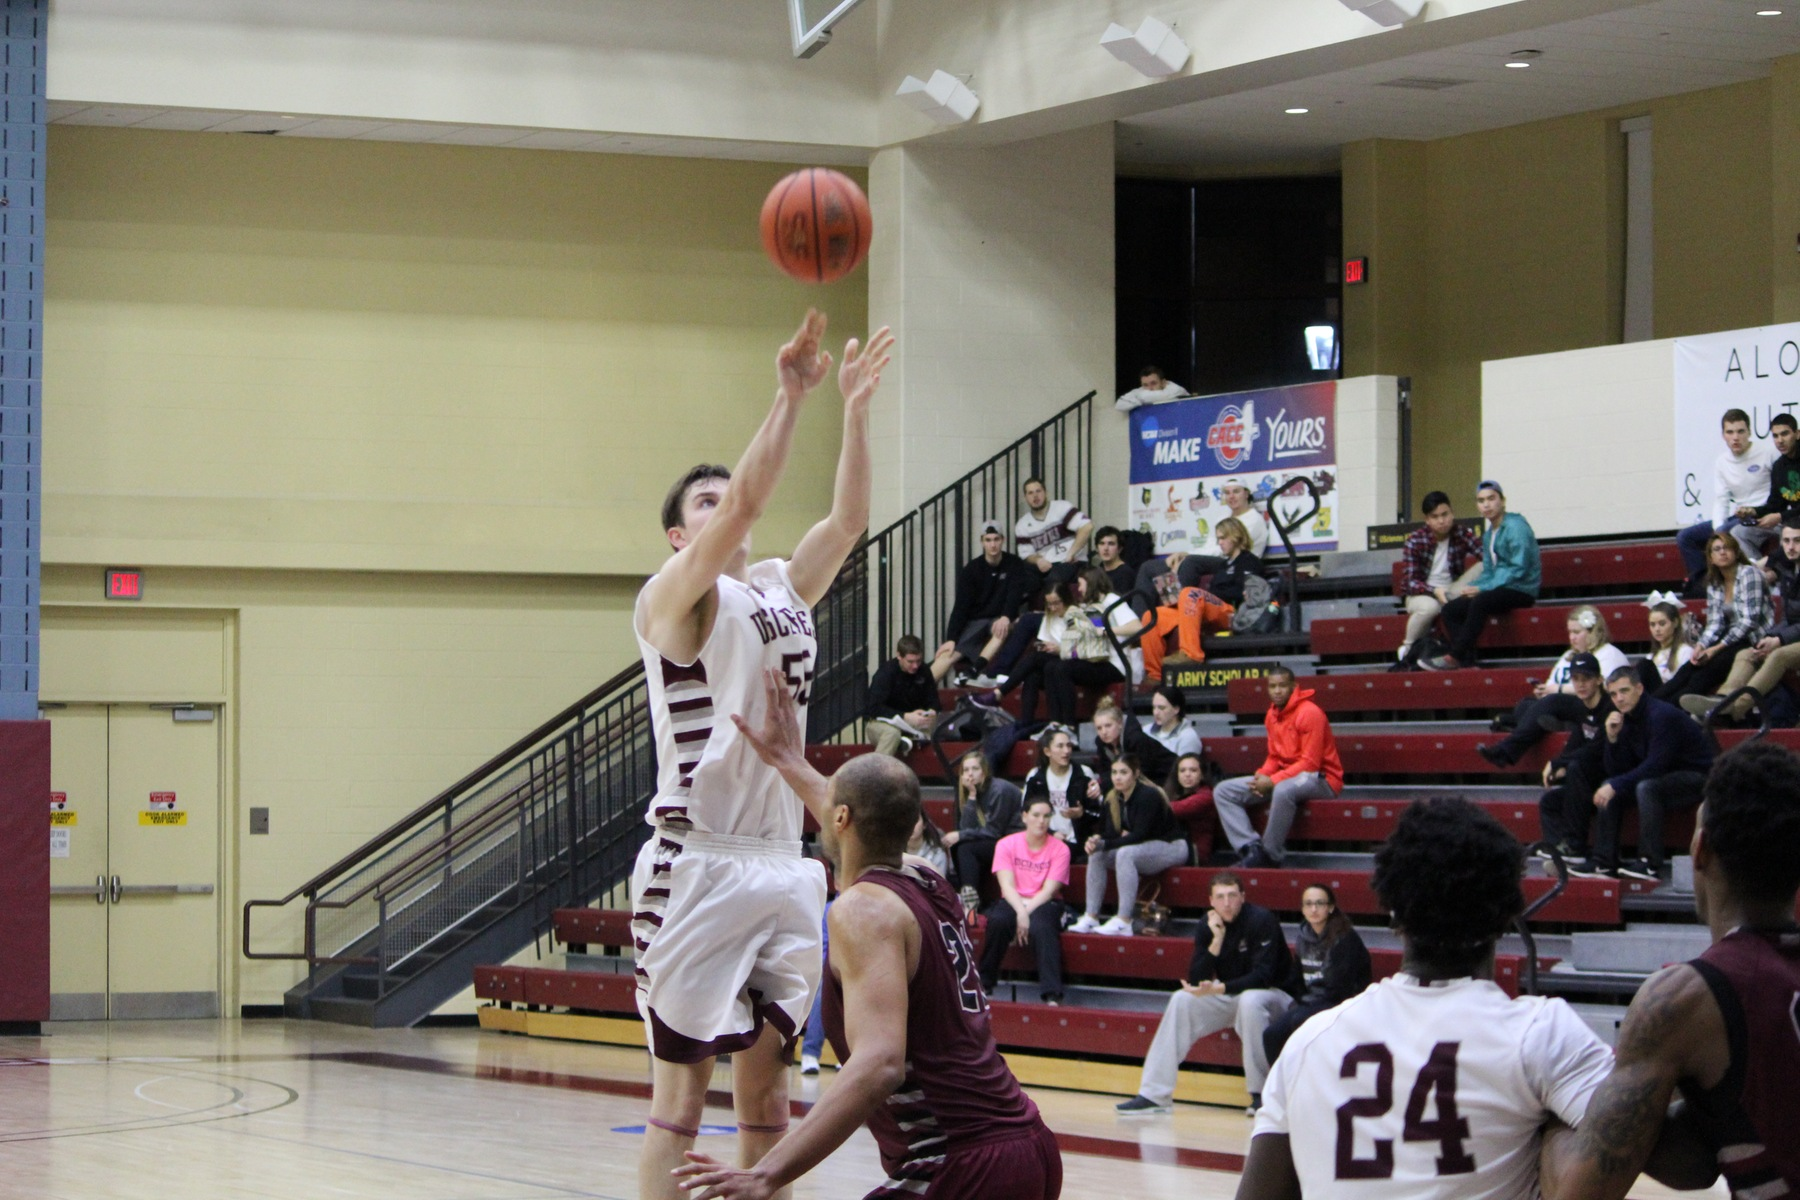 Men's Basketball Posts Near Wire-to-Wire Win Over LIU Post in Season-Opener